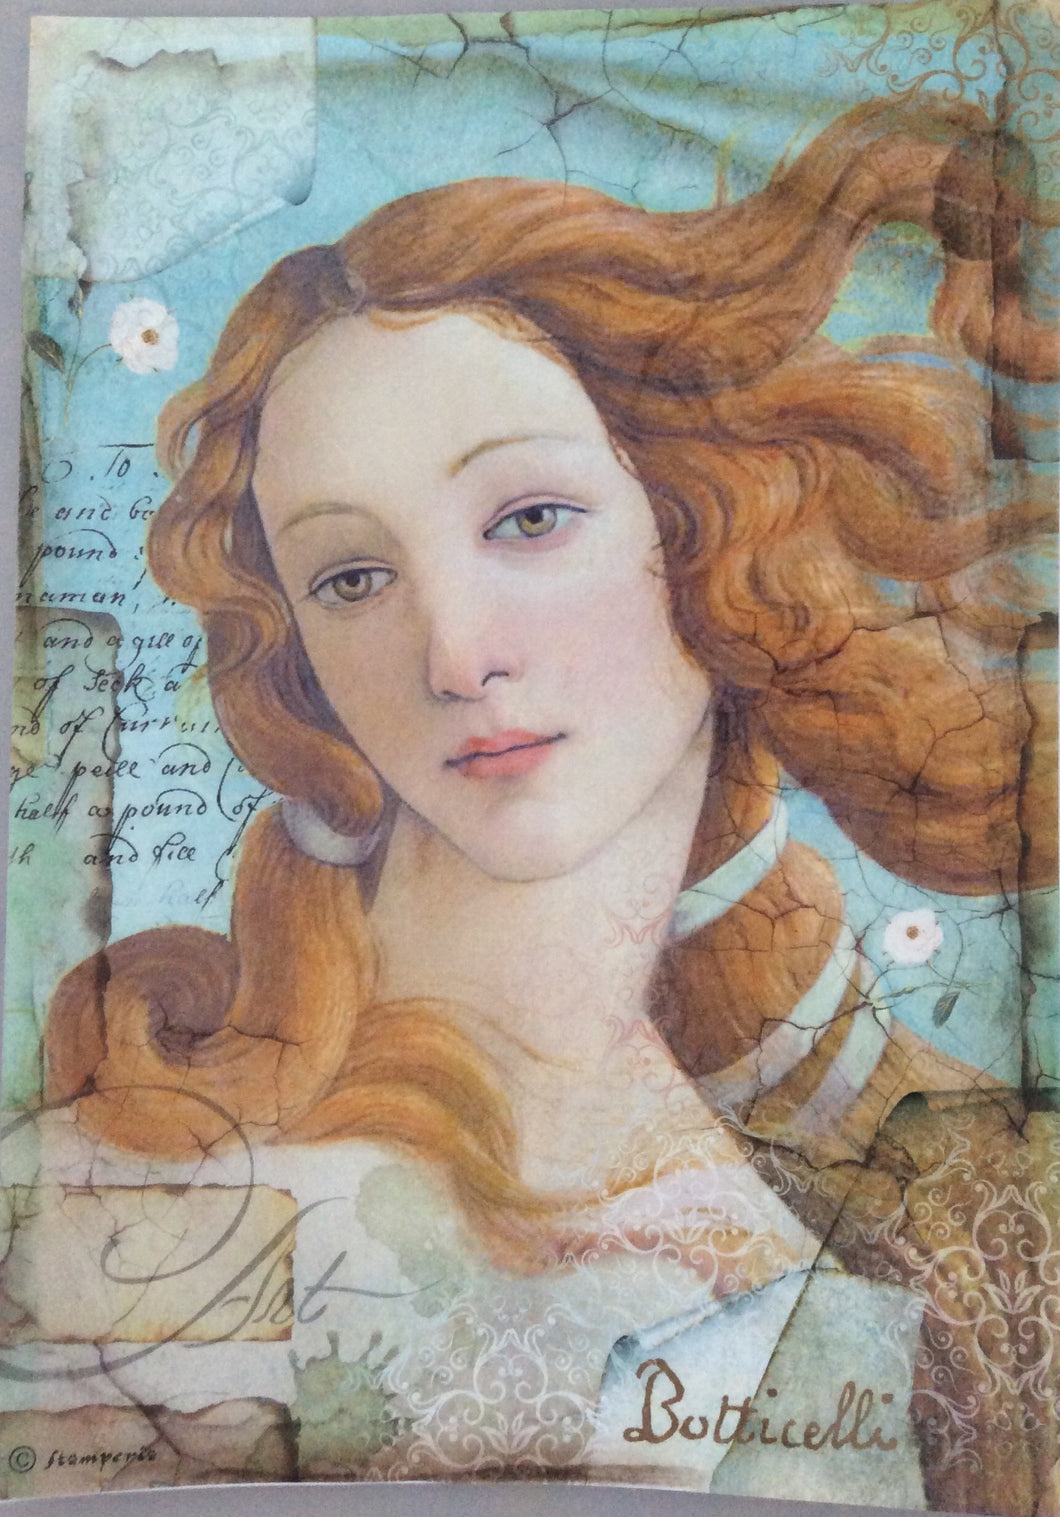 Stamperia Decoupage Rice Paper A4 Botticelli